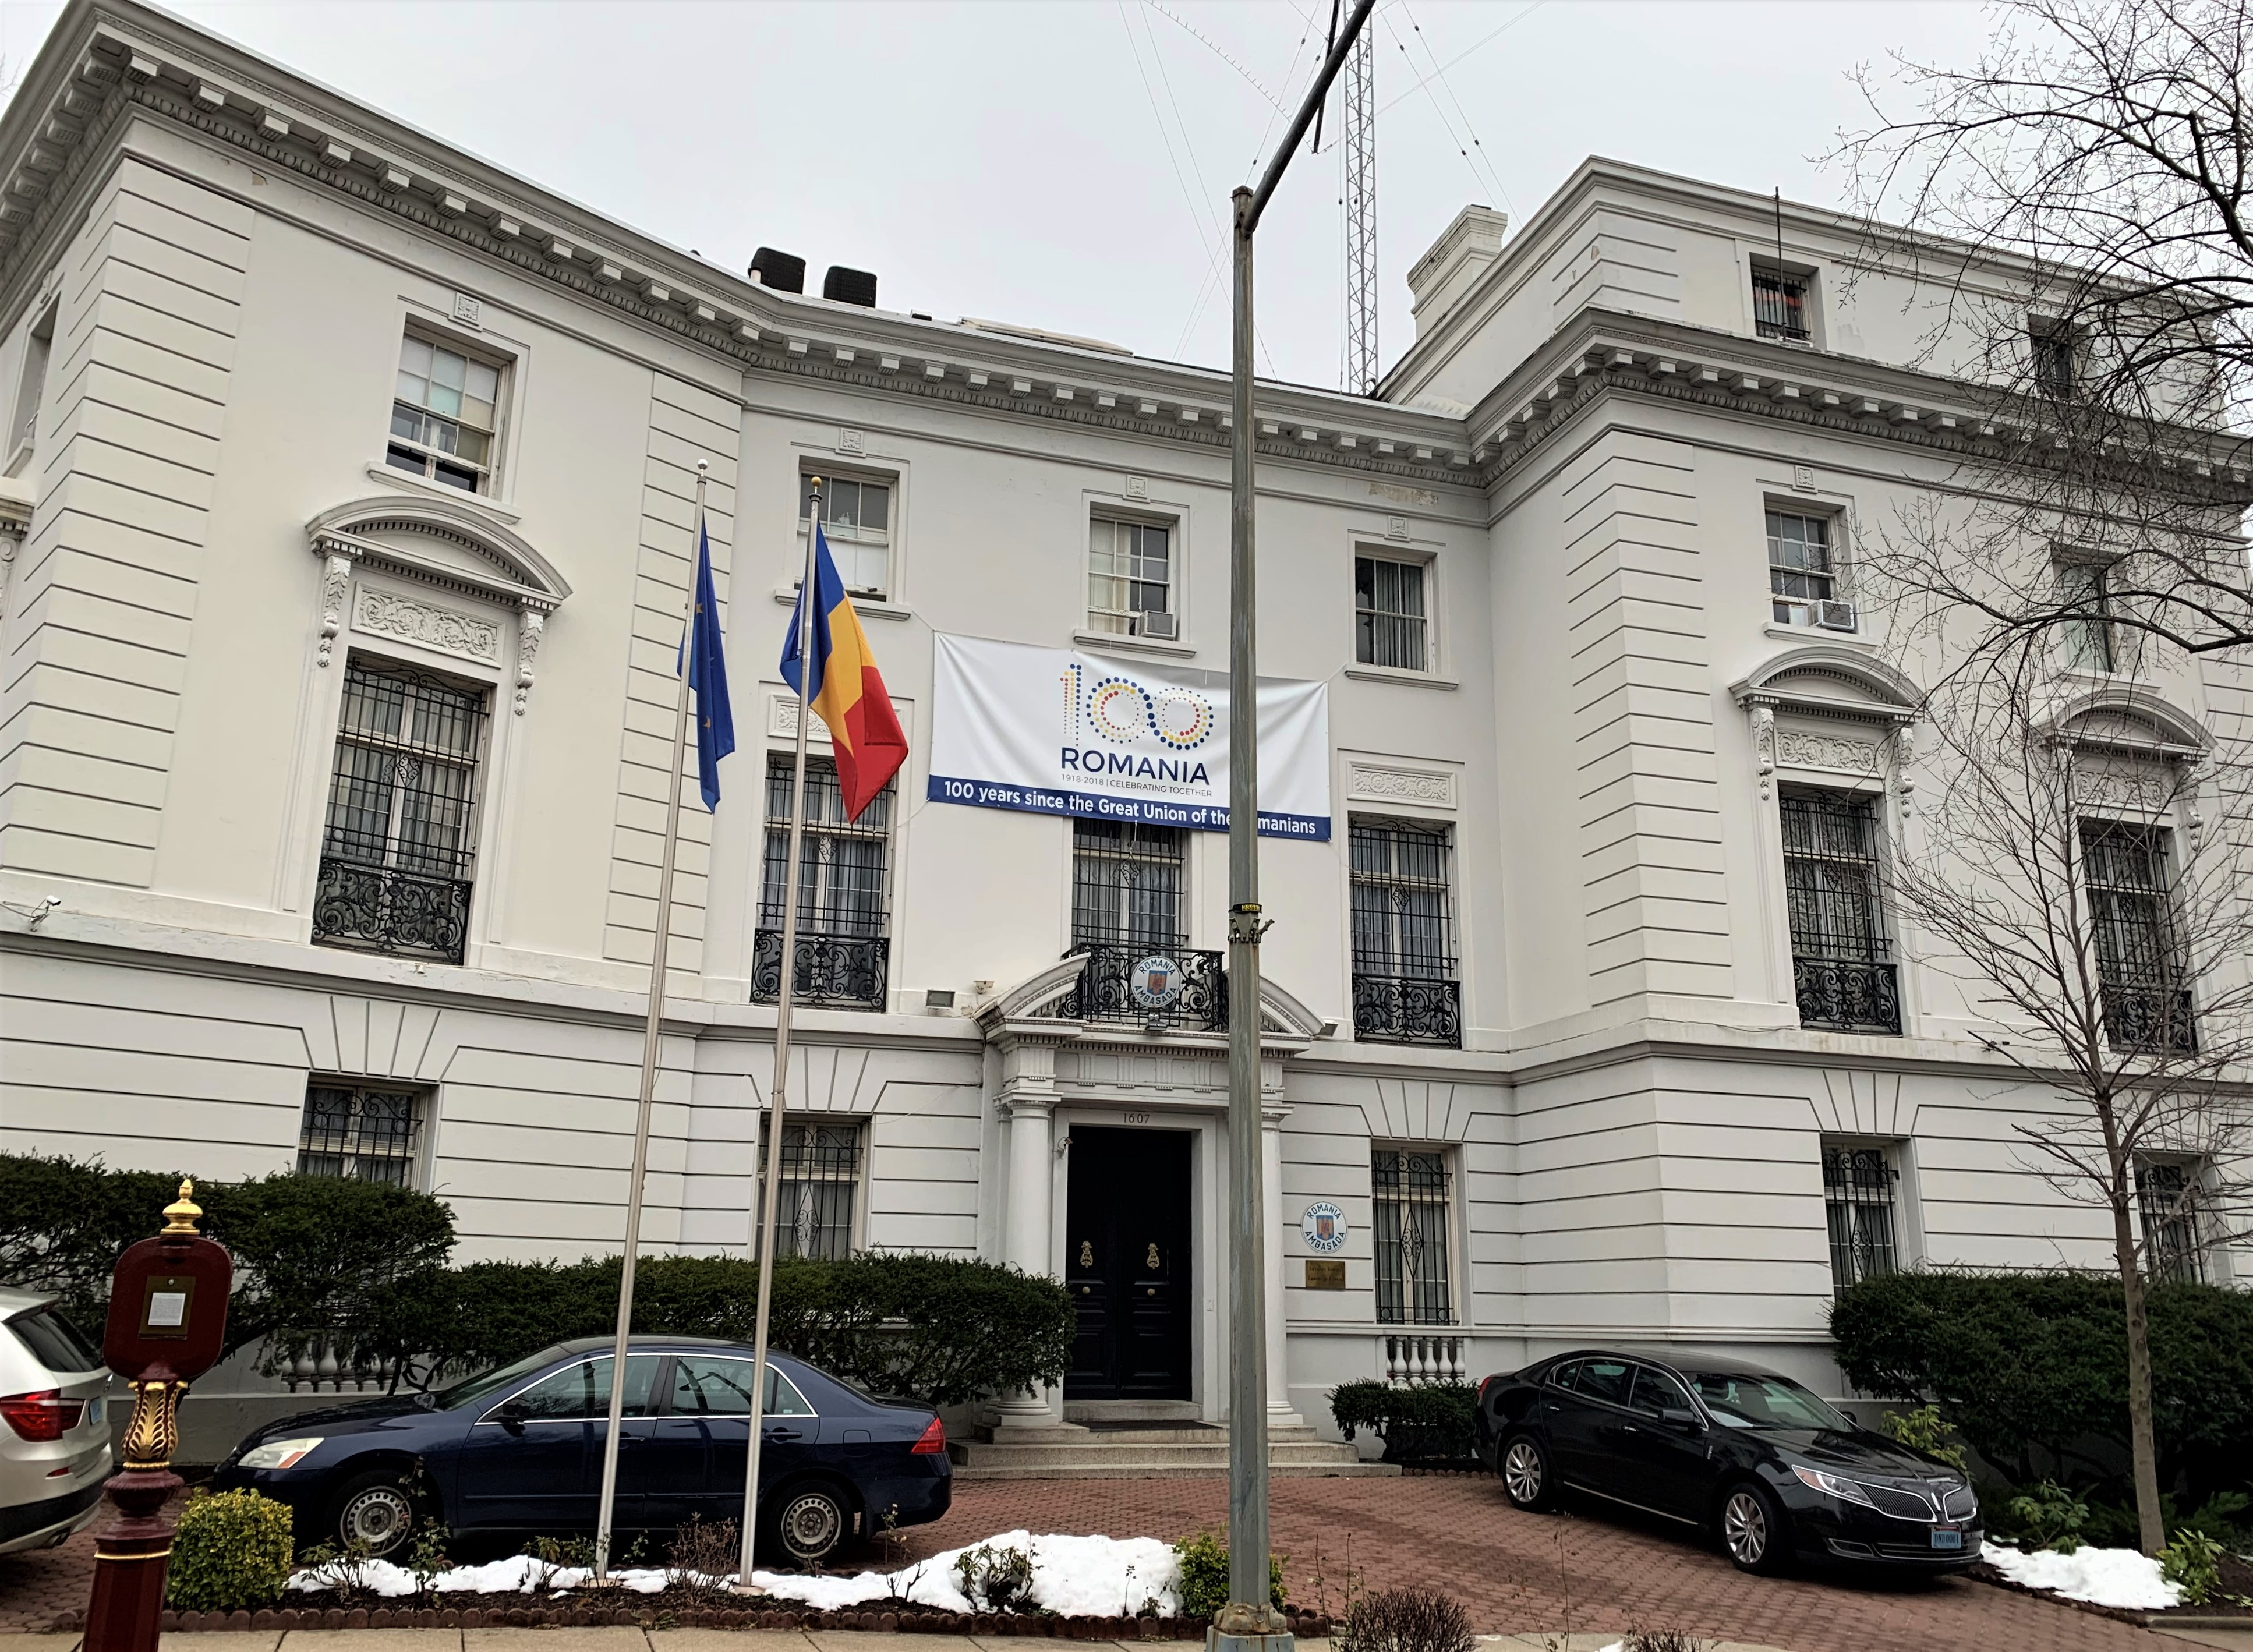 Real Estate & Homes For Sale Near The Embassy of Romania in Washington, DC. Artyom Shmatko Luxury Real Estate Agent